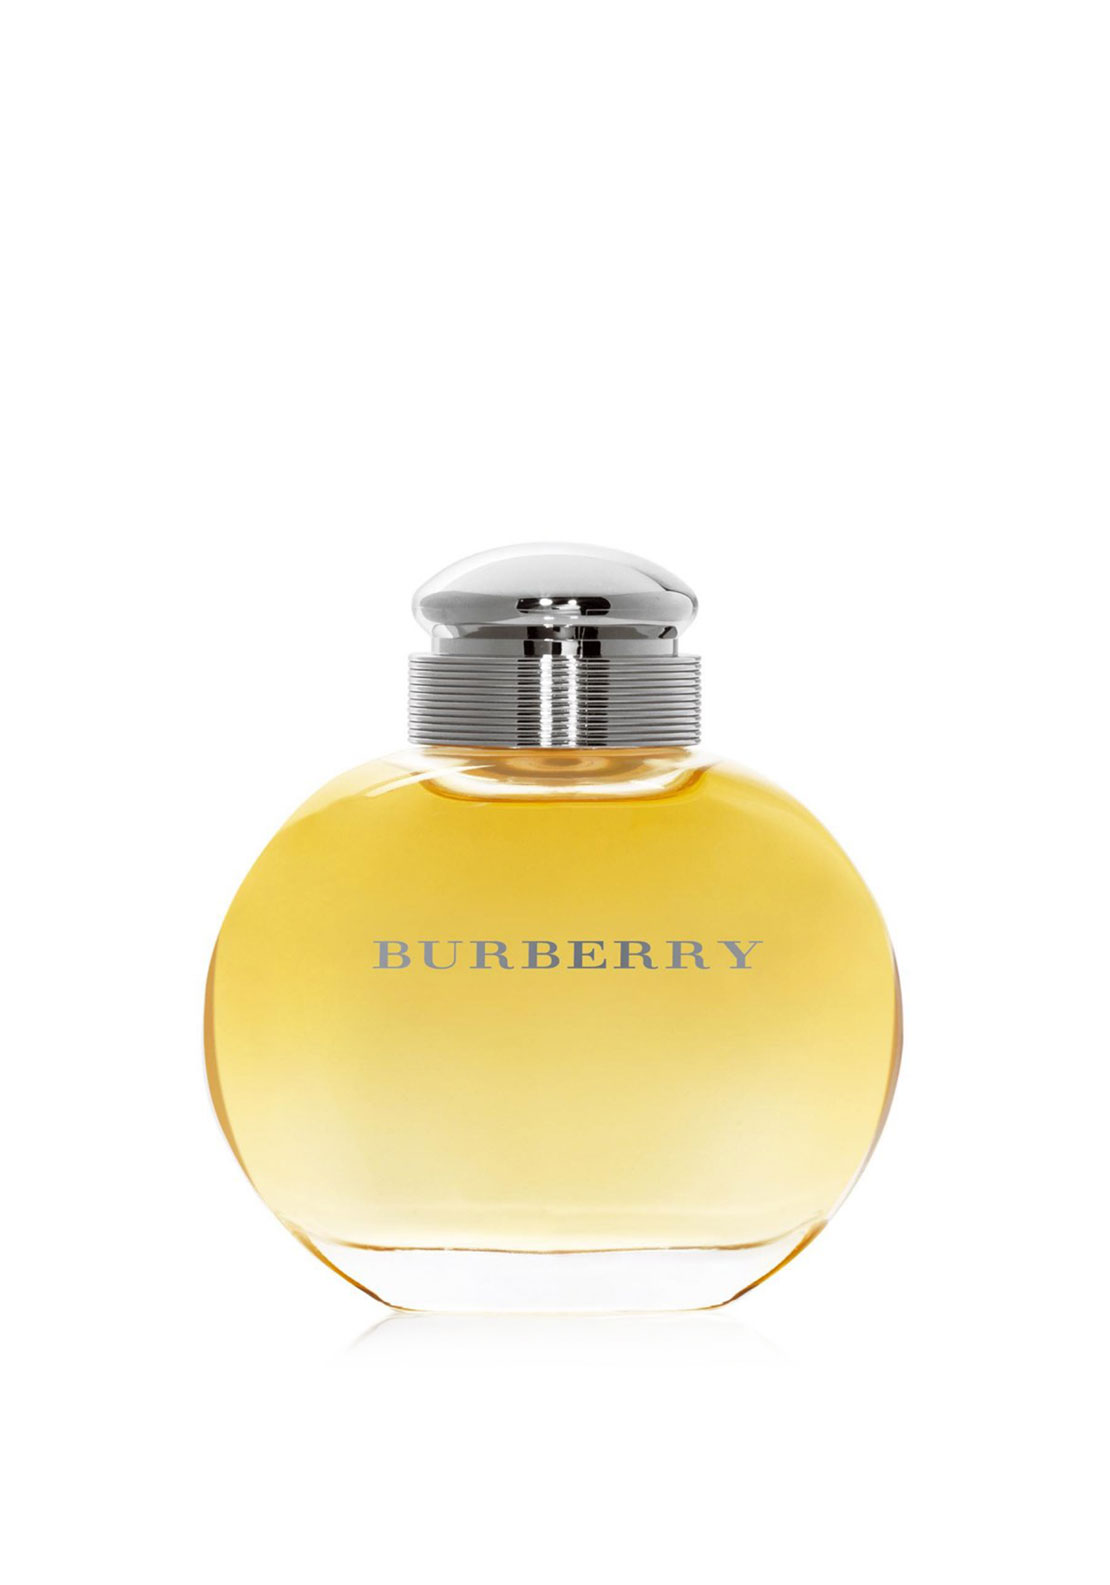 Burberry Eau De Parfum Natural Spray, 30ml